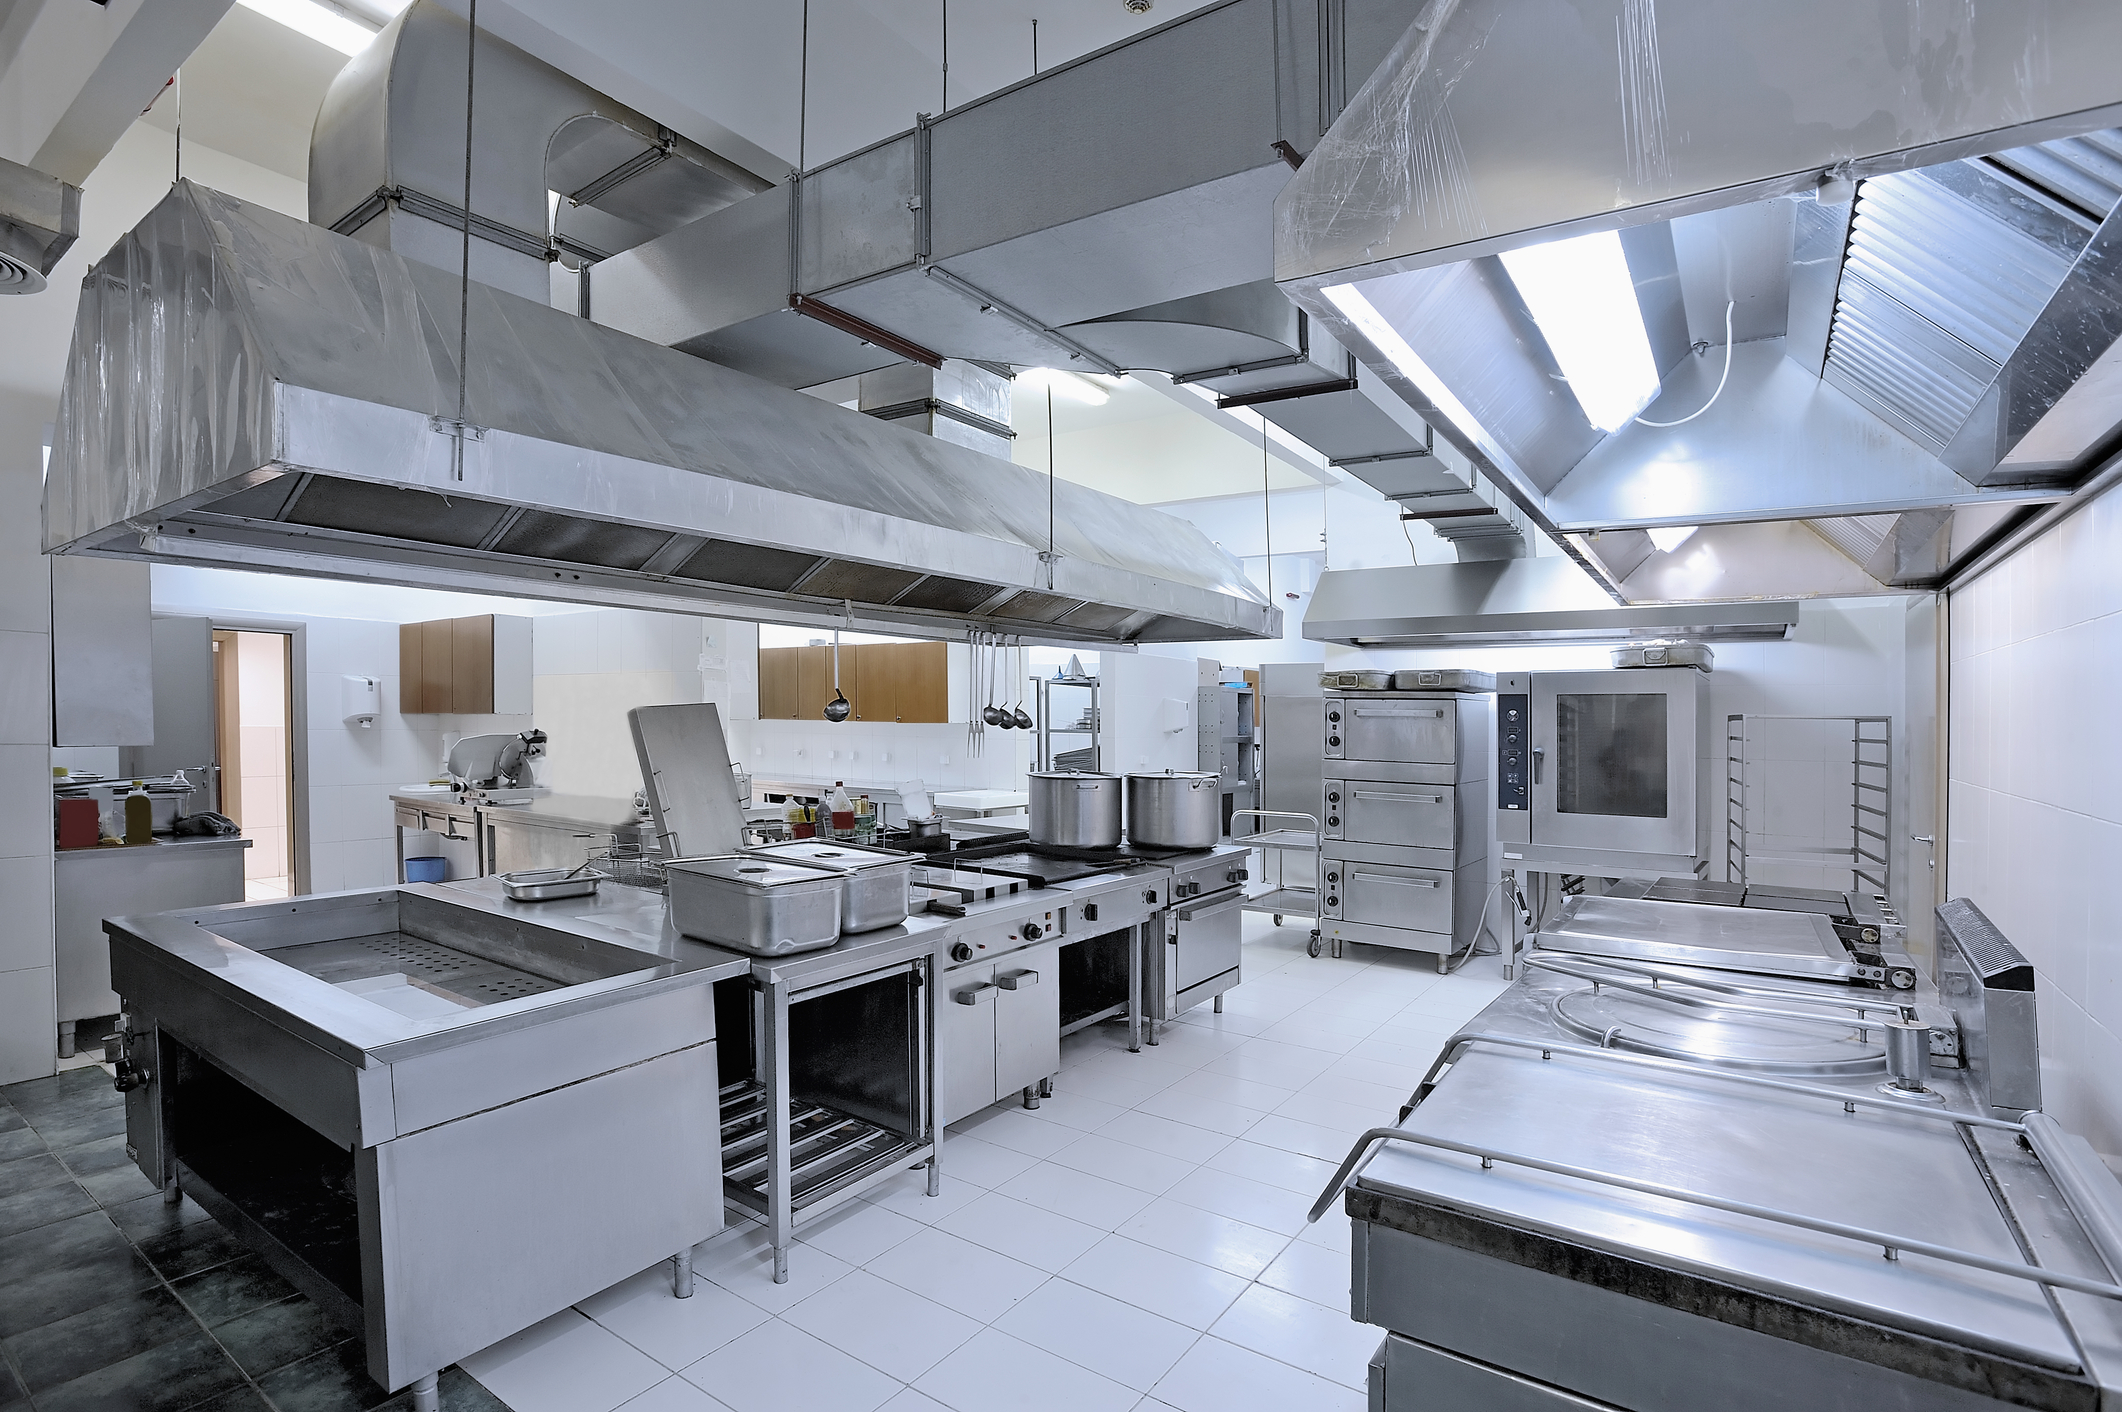 Commercial kitchen design best 5 important things you for Professional kitchen design